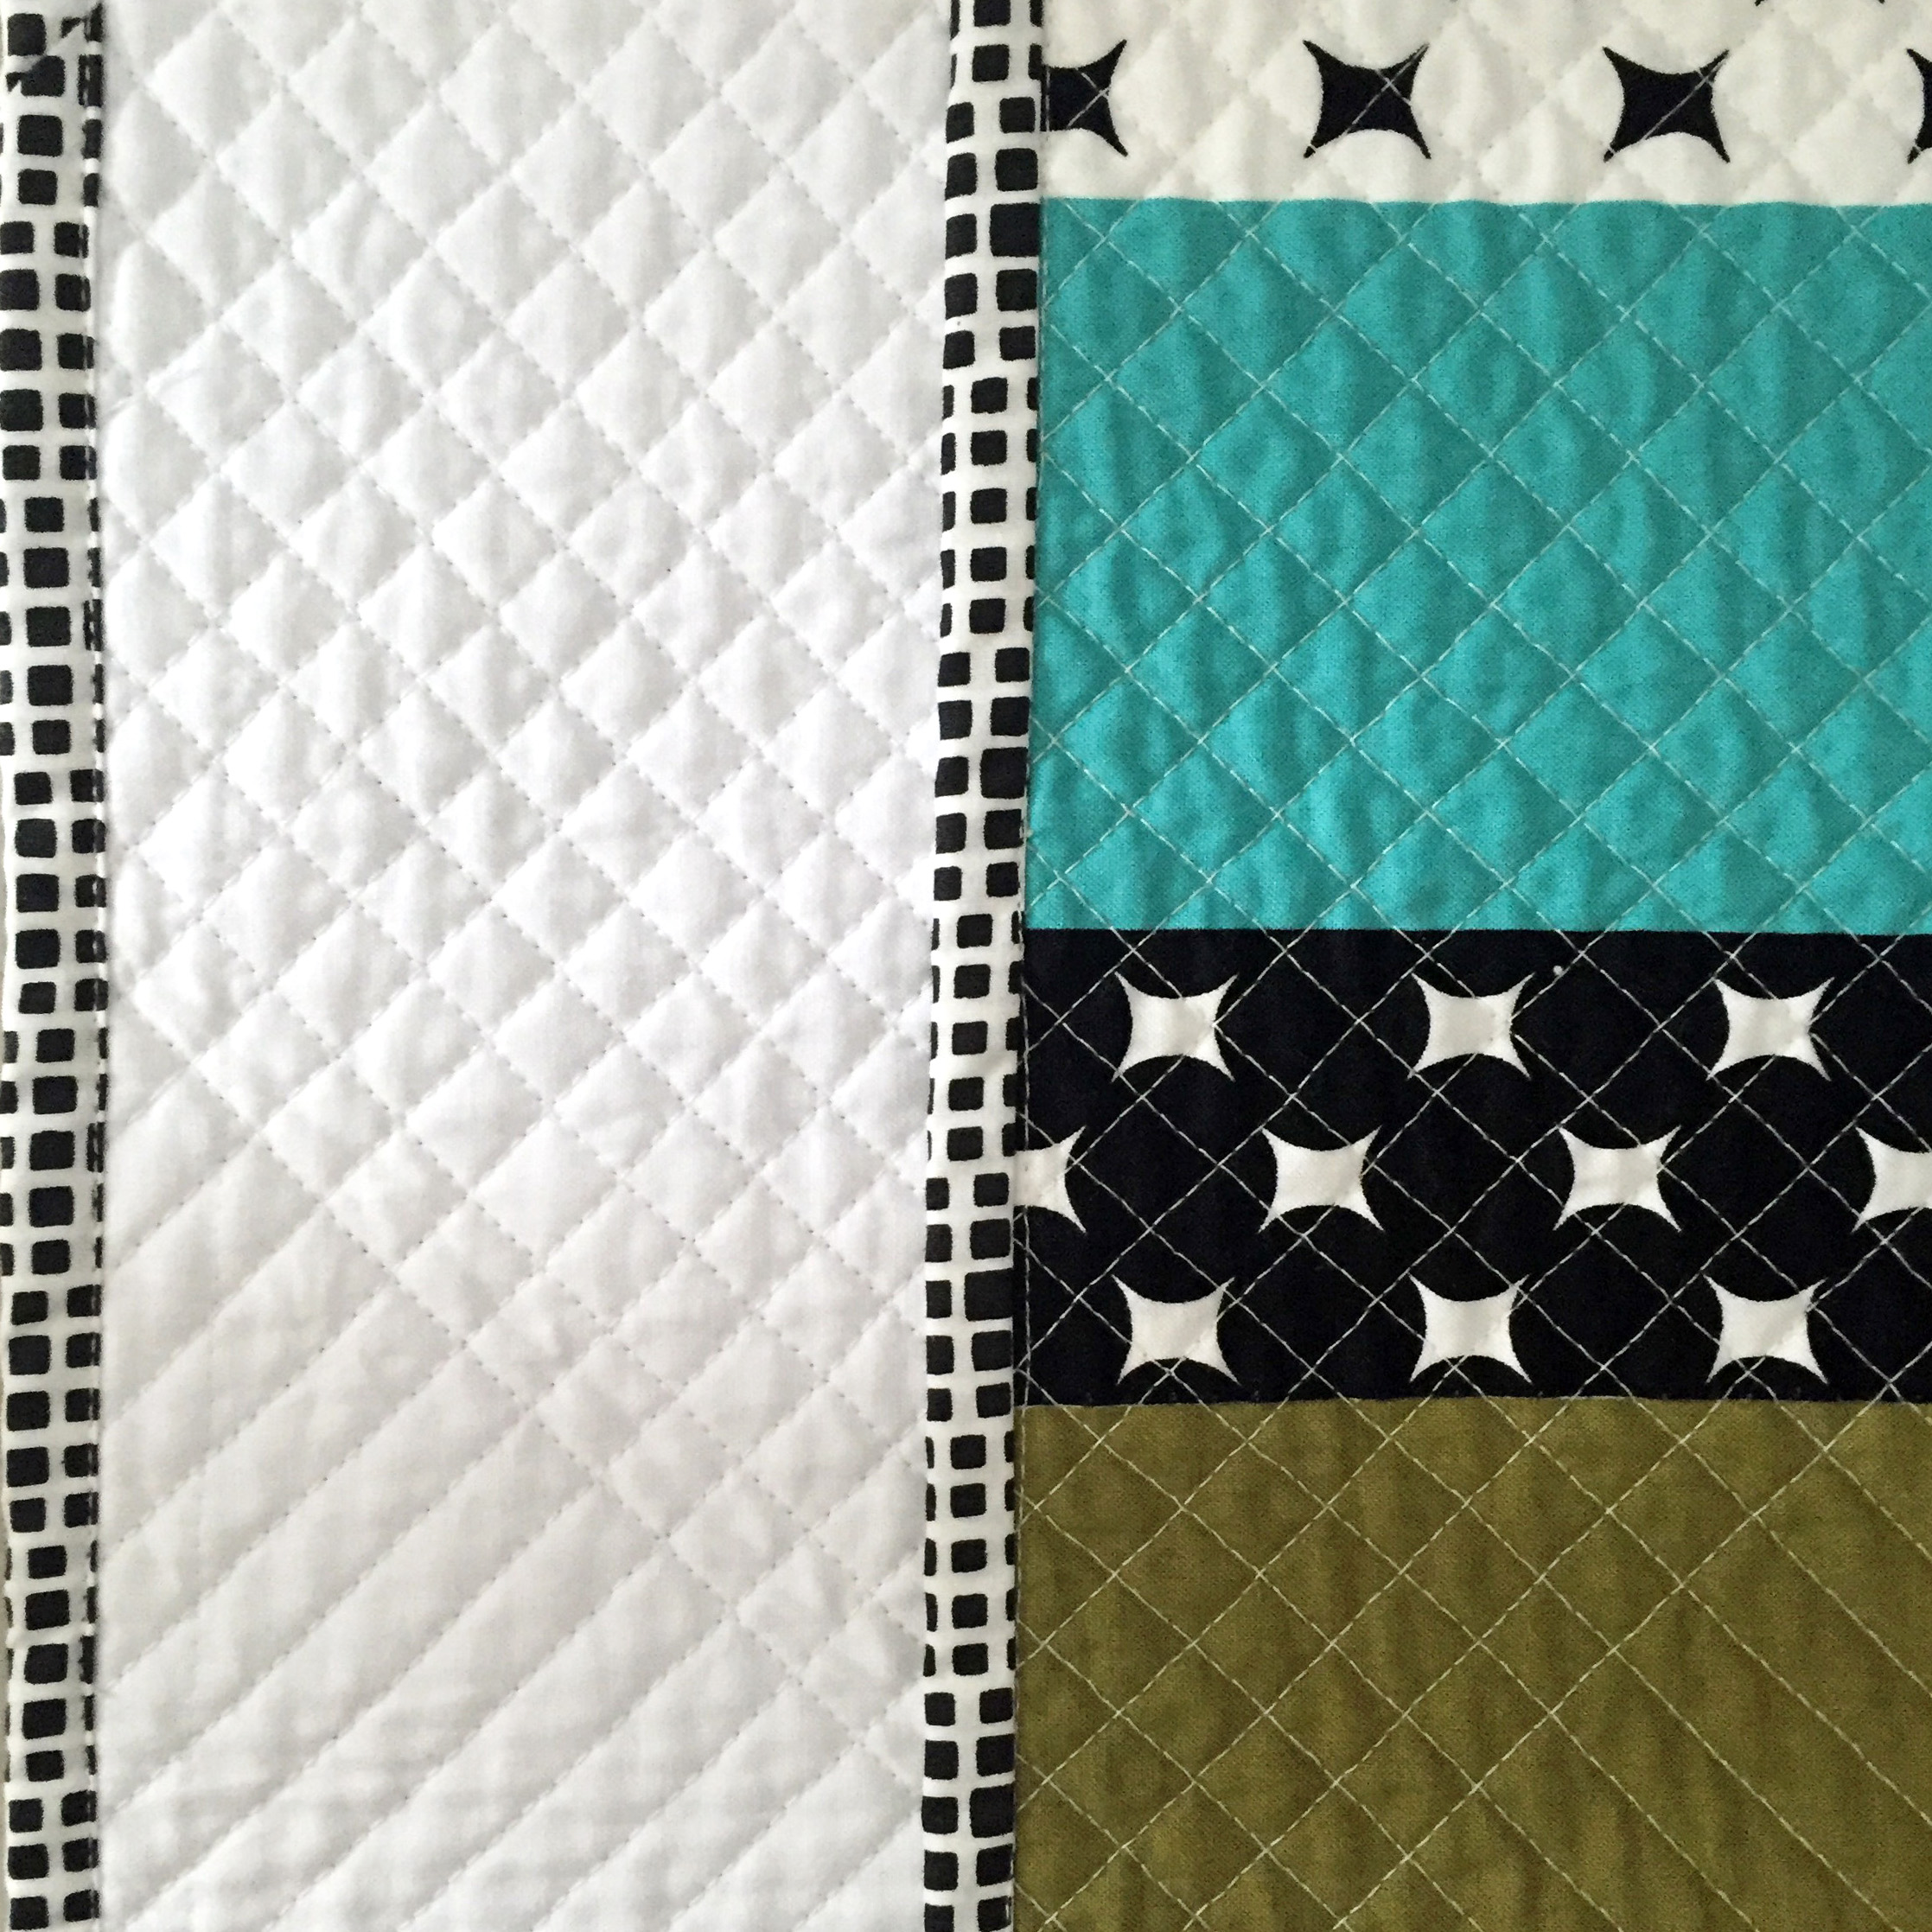 Finished Quilts - hand-crafted and one-of-a-kind